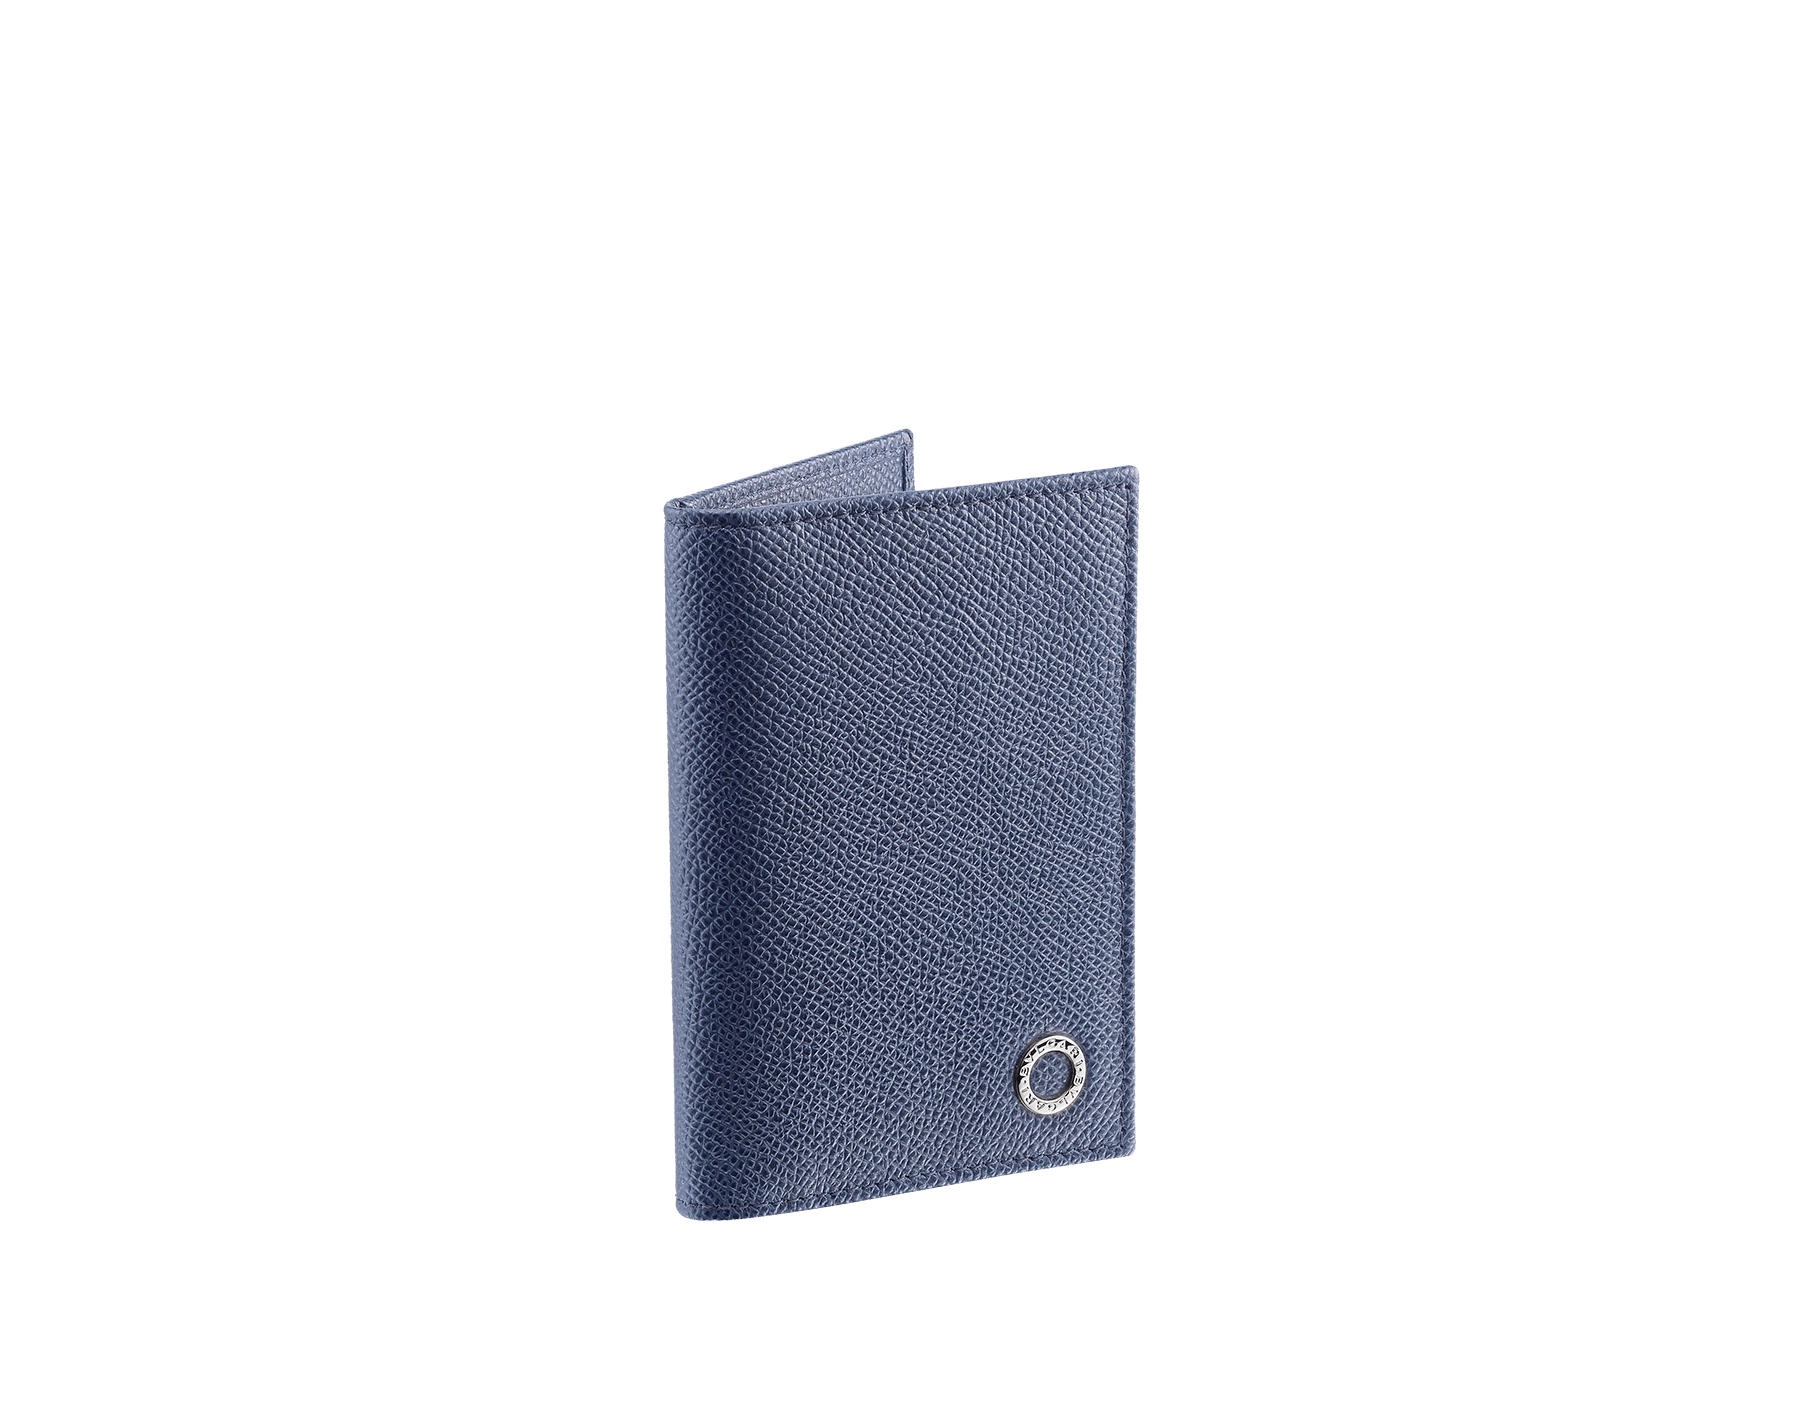 Folded credit card holder in denim sapphire calf leather with brass palladium plated Bulgari Bulgari motif. Six credit card slots and two compartments. Also available in other colours. 8 x 11,5 cm. - 3.1 x 4.5 280294 image 1